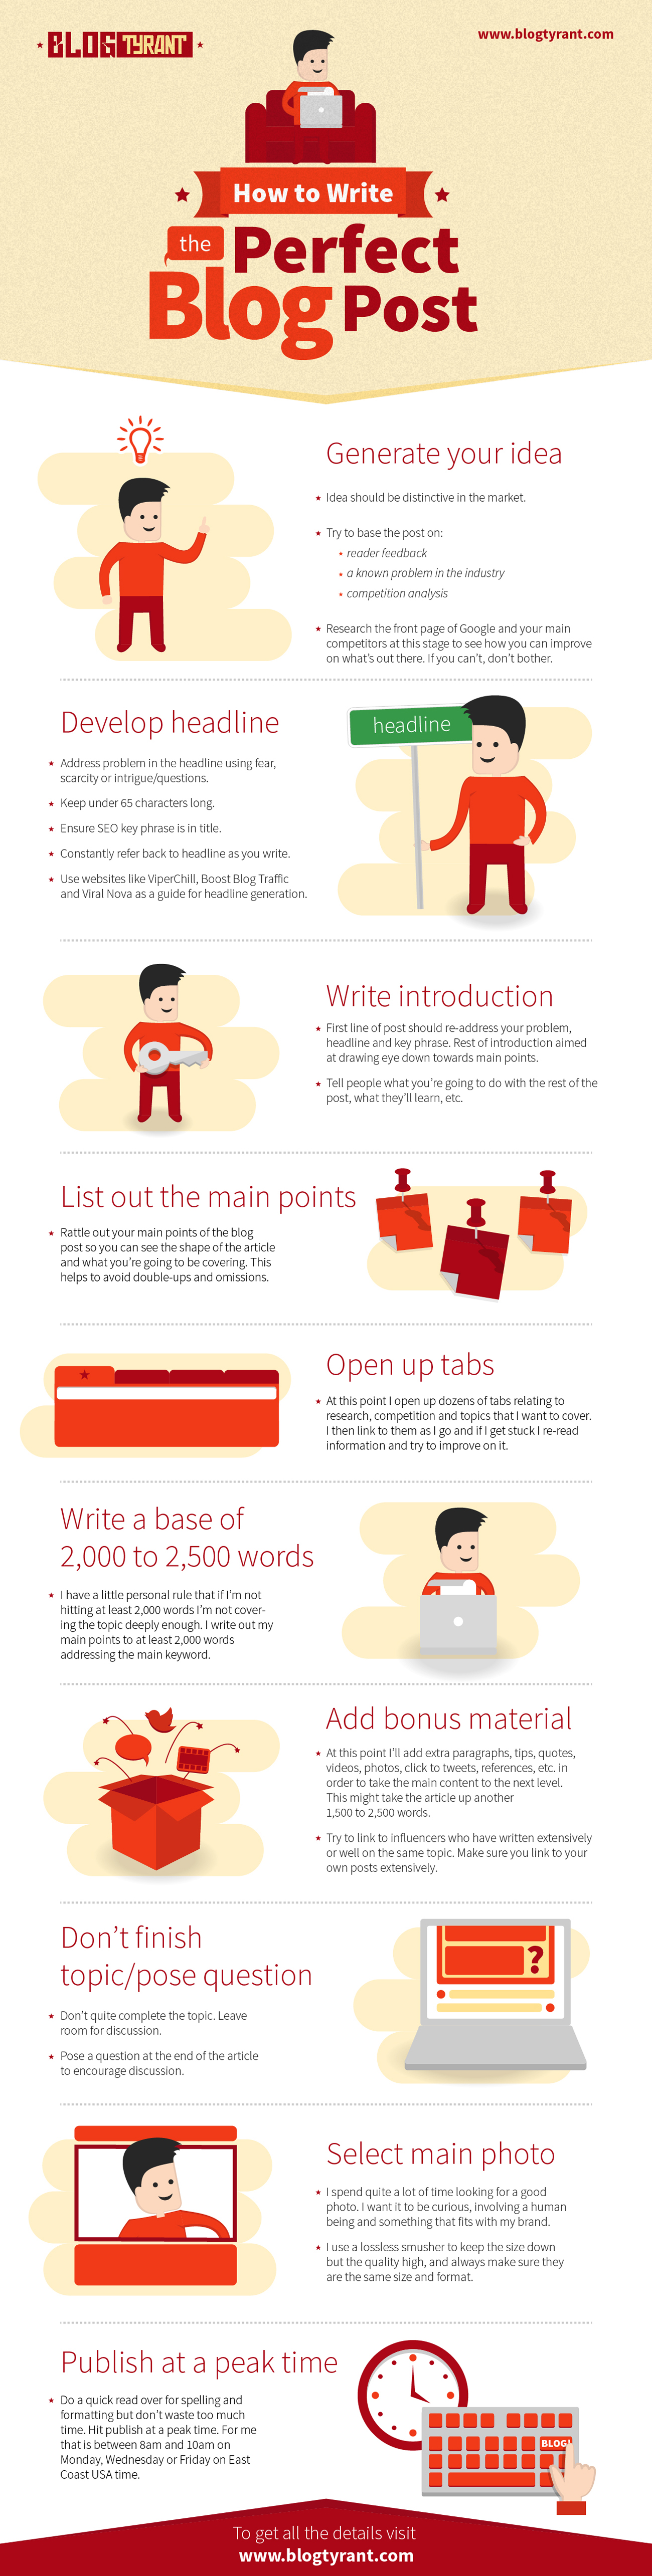 writing-brilliant-blogpost-infographic